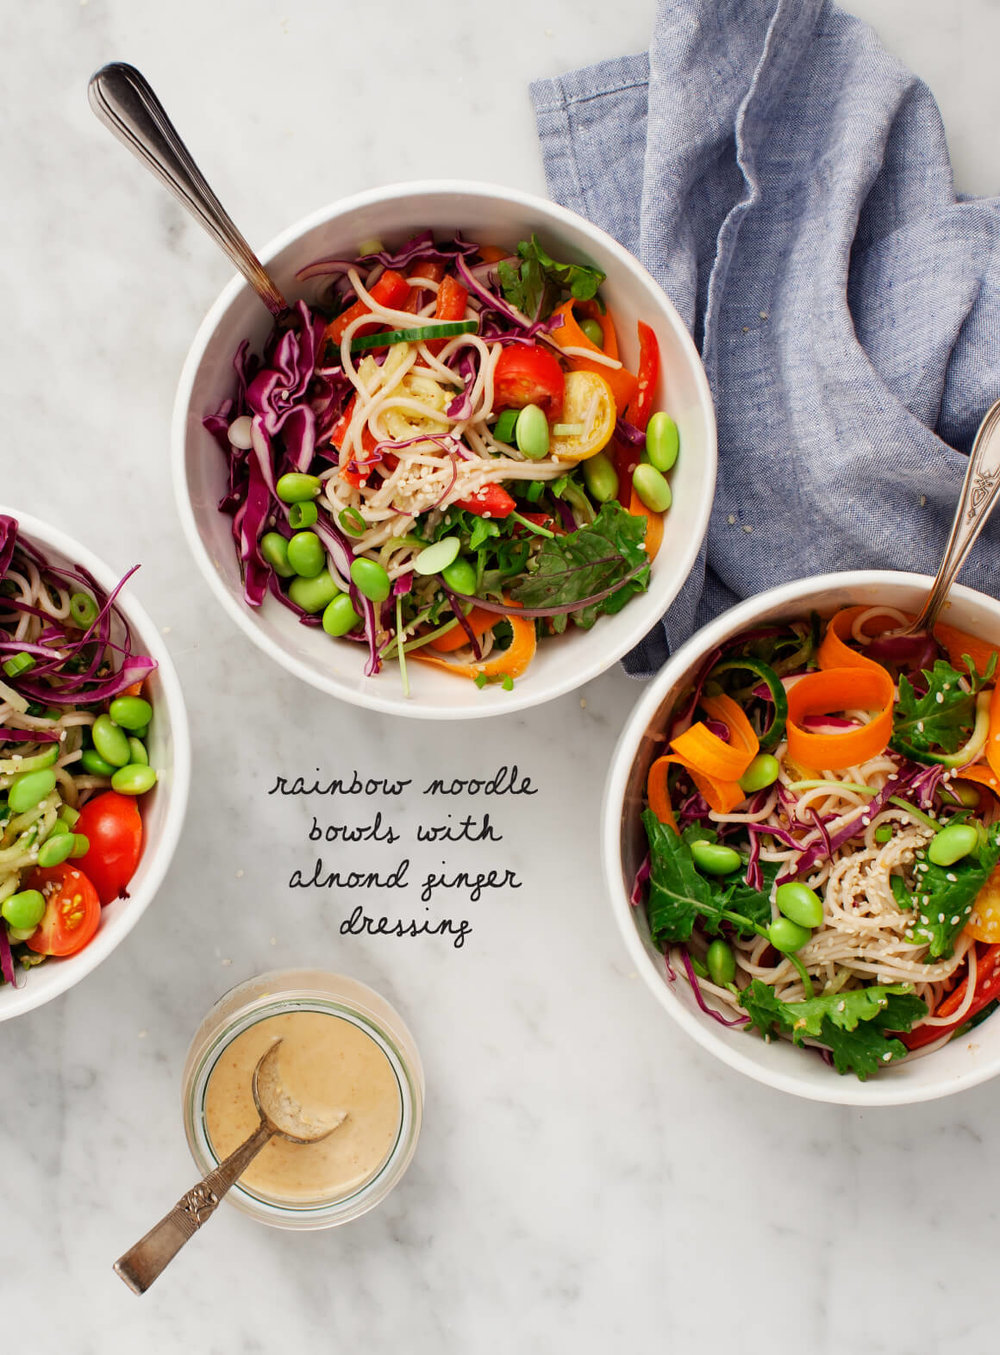 Rainbow Bowls with an almond dressing